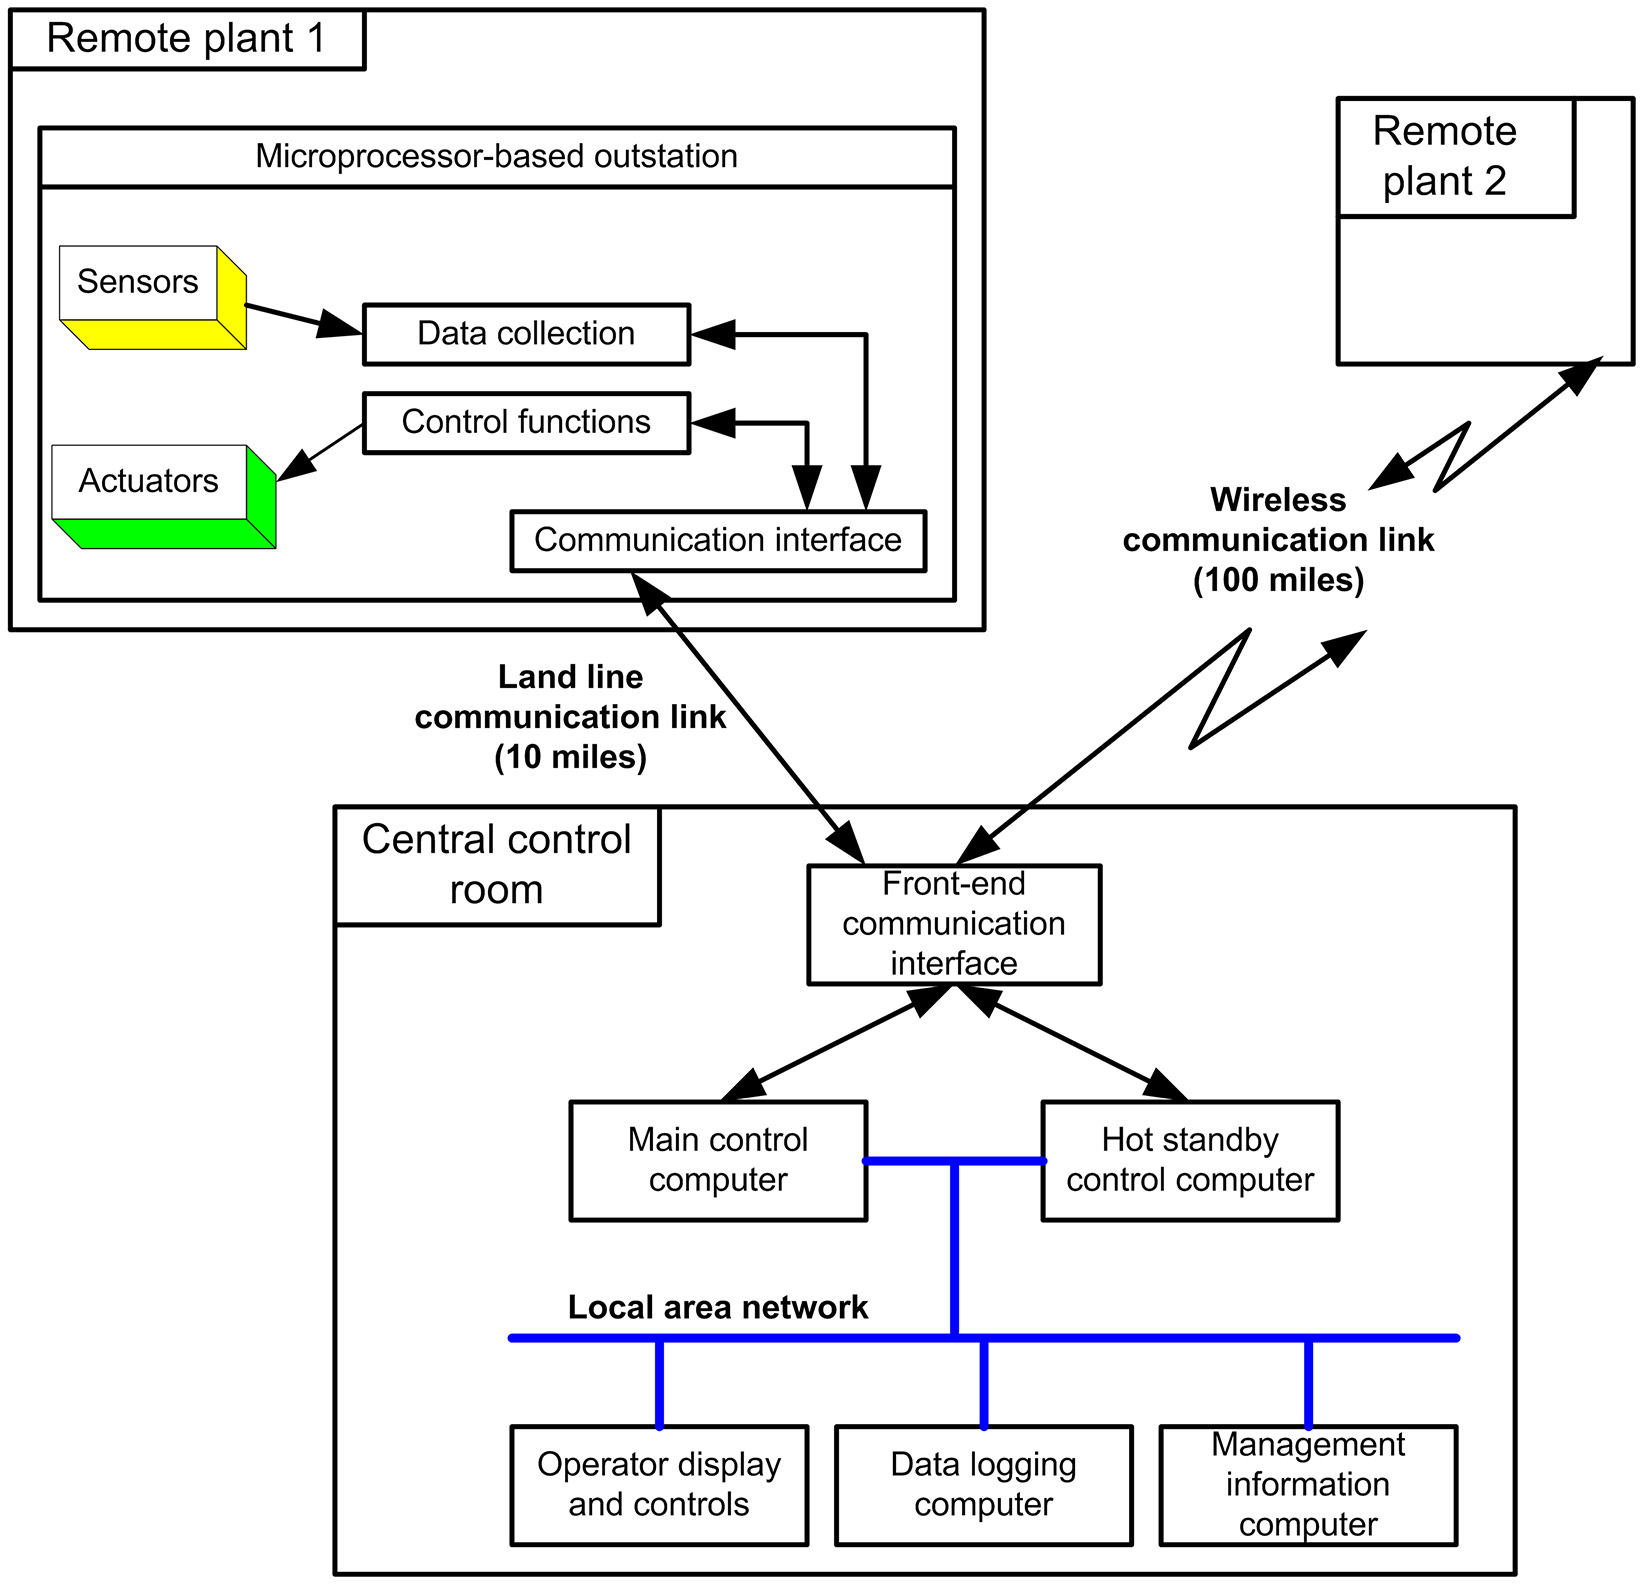 Figure 1.6: Telemetry control system